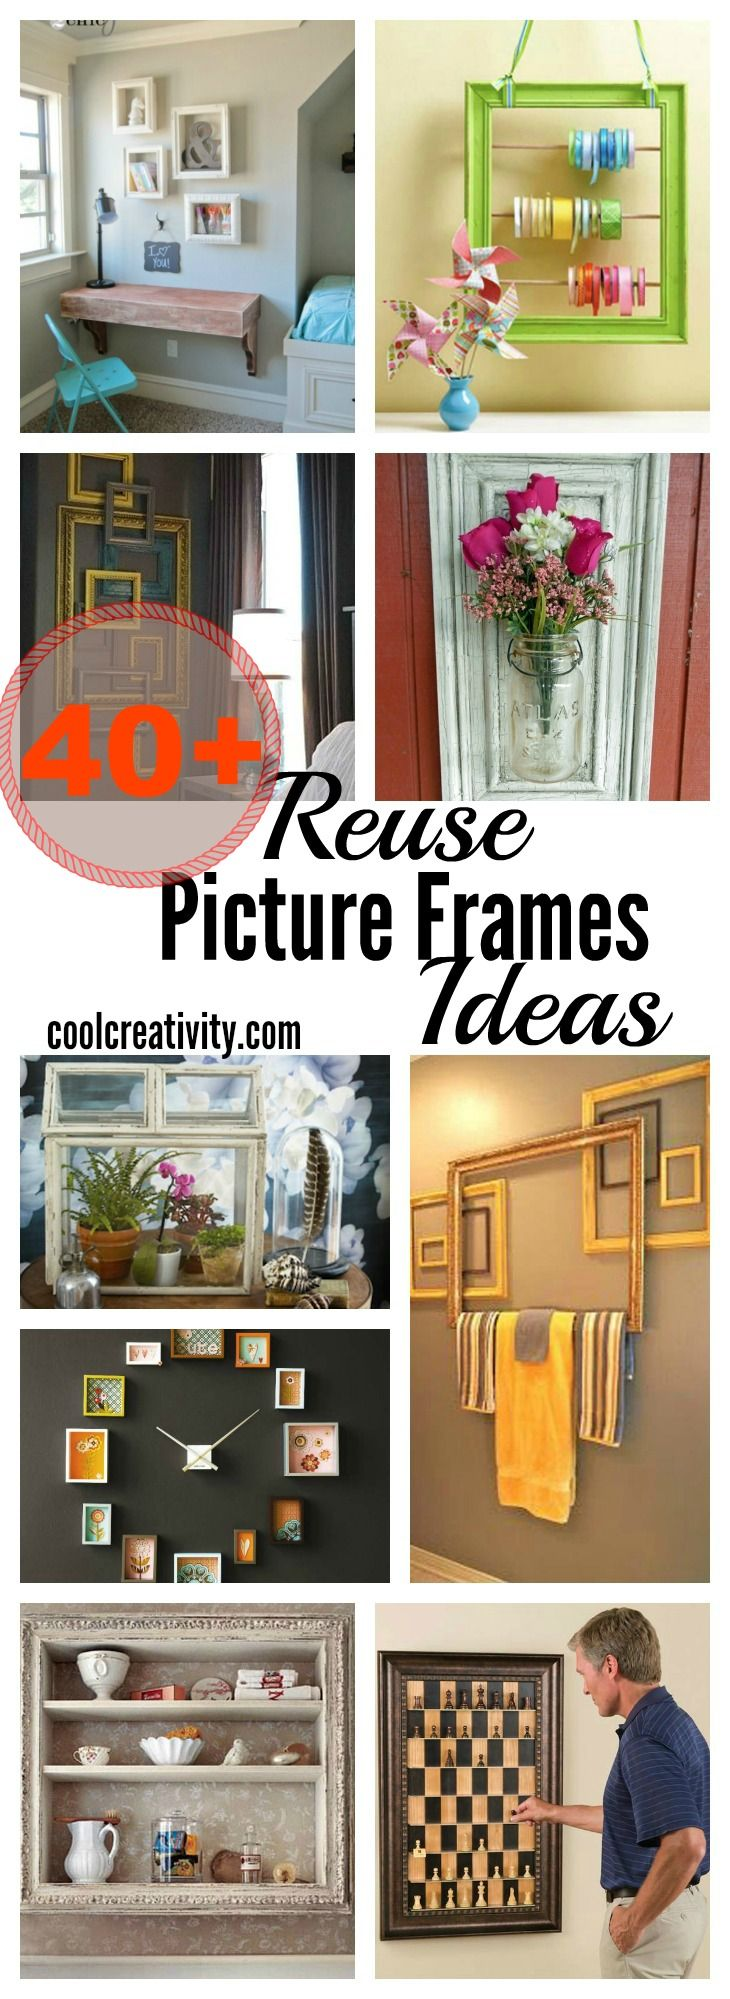 creative diy string art project ideas reuse creative and craft